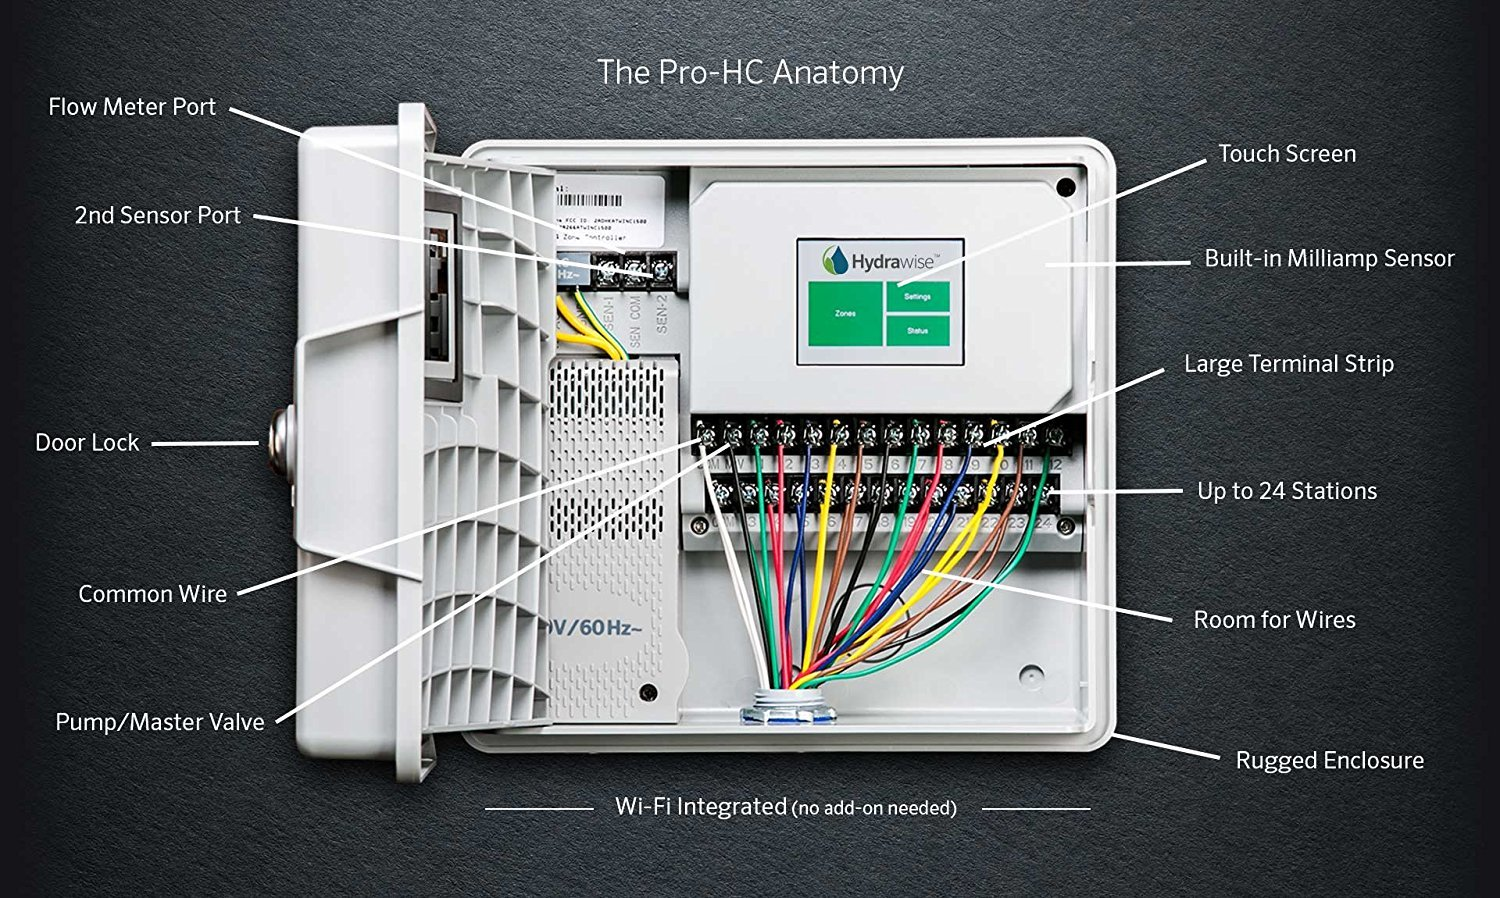 6 Station Hunter PRO-HC PHC-600 Residential Outdoor Professional Grade Wi-Fi Controller With Hydrawise Web-based Software